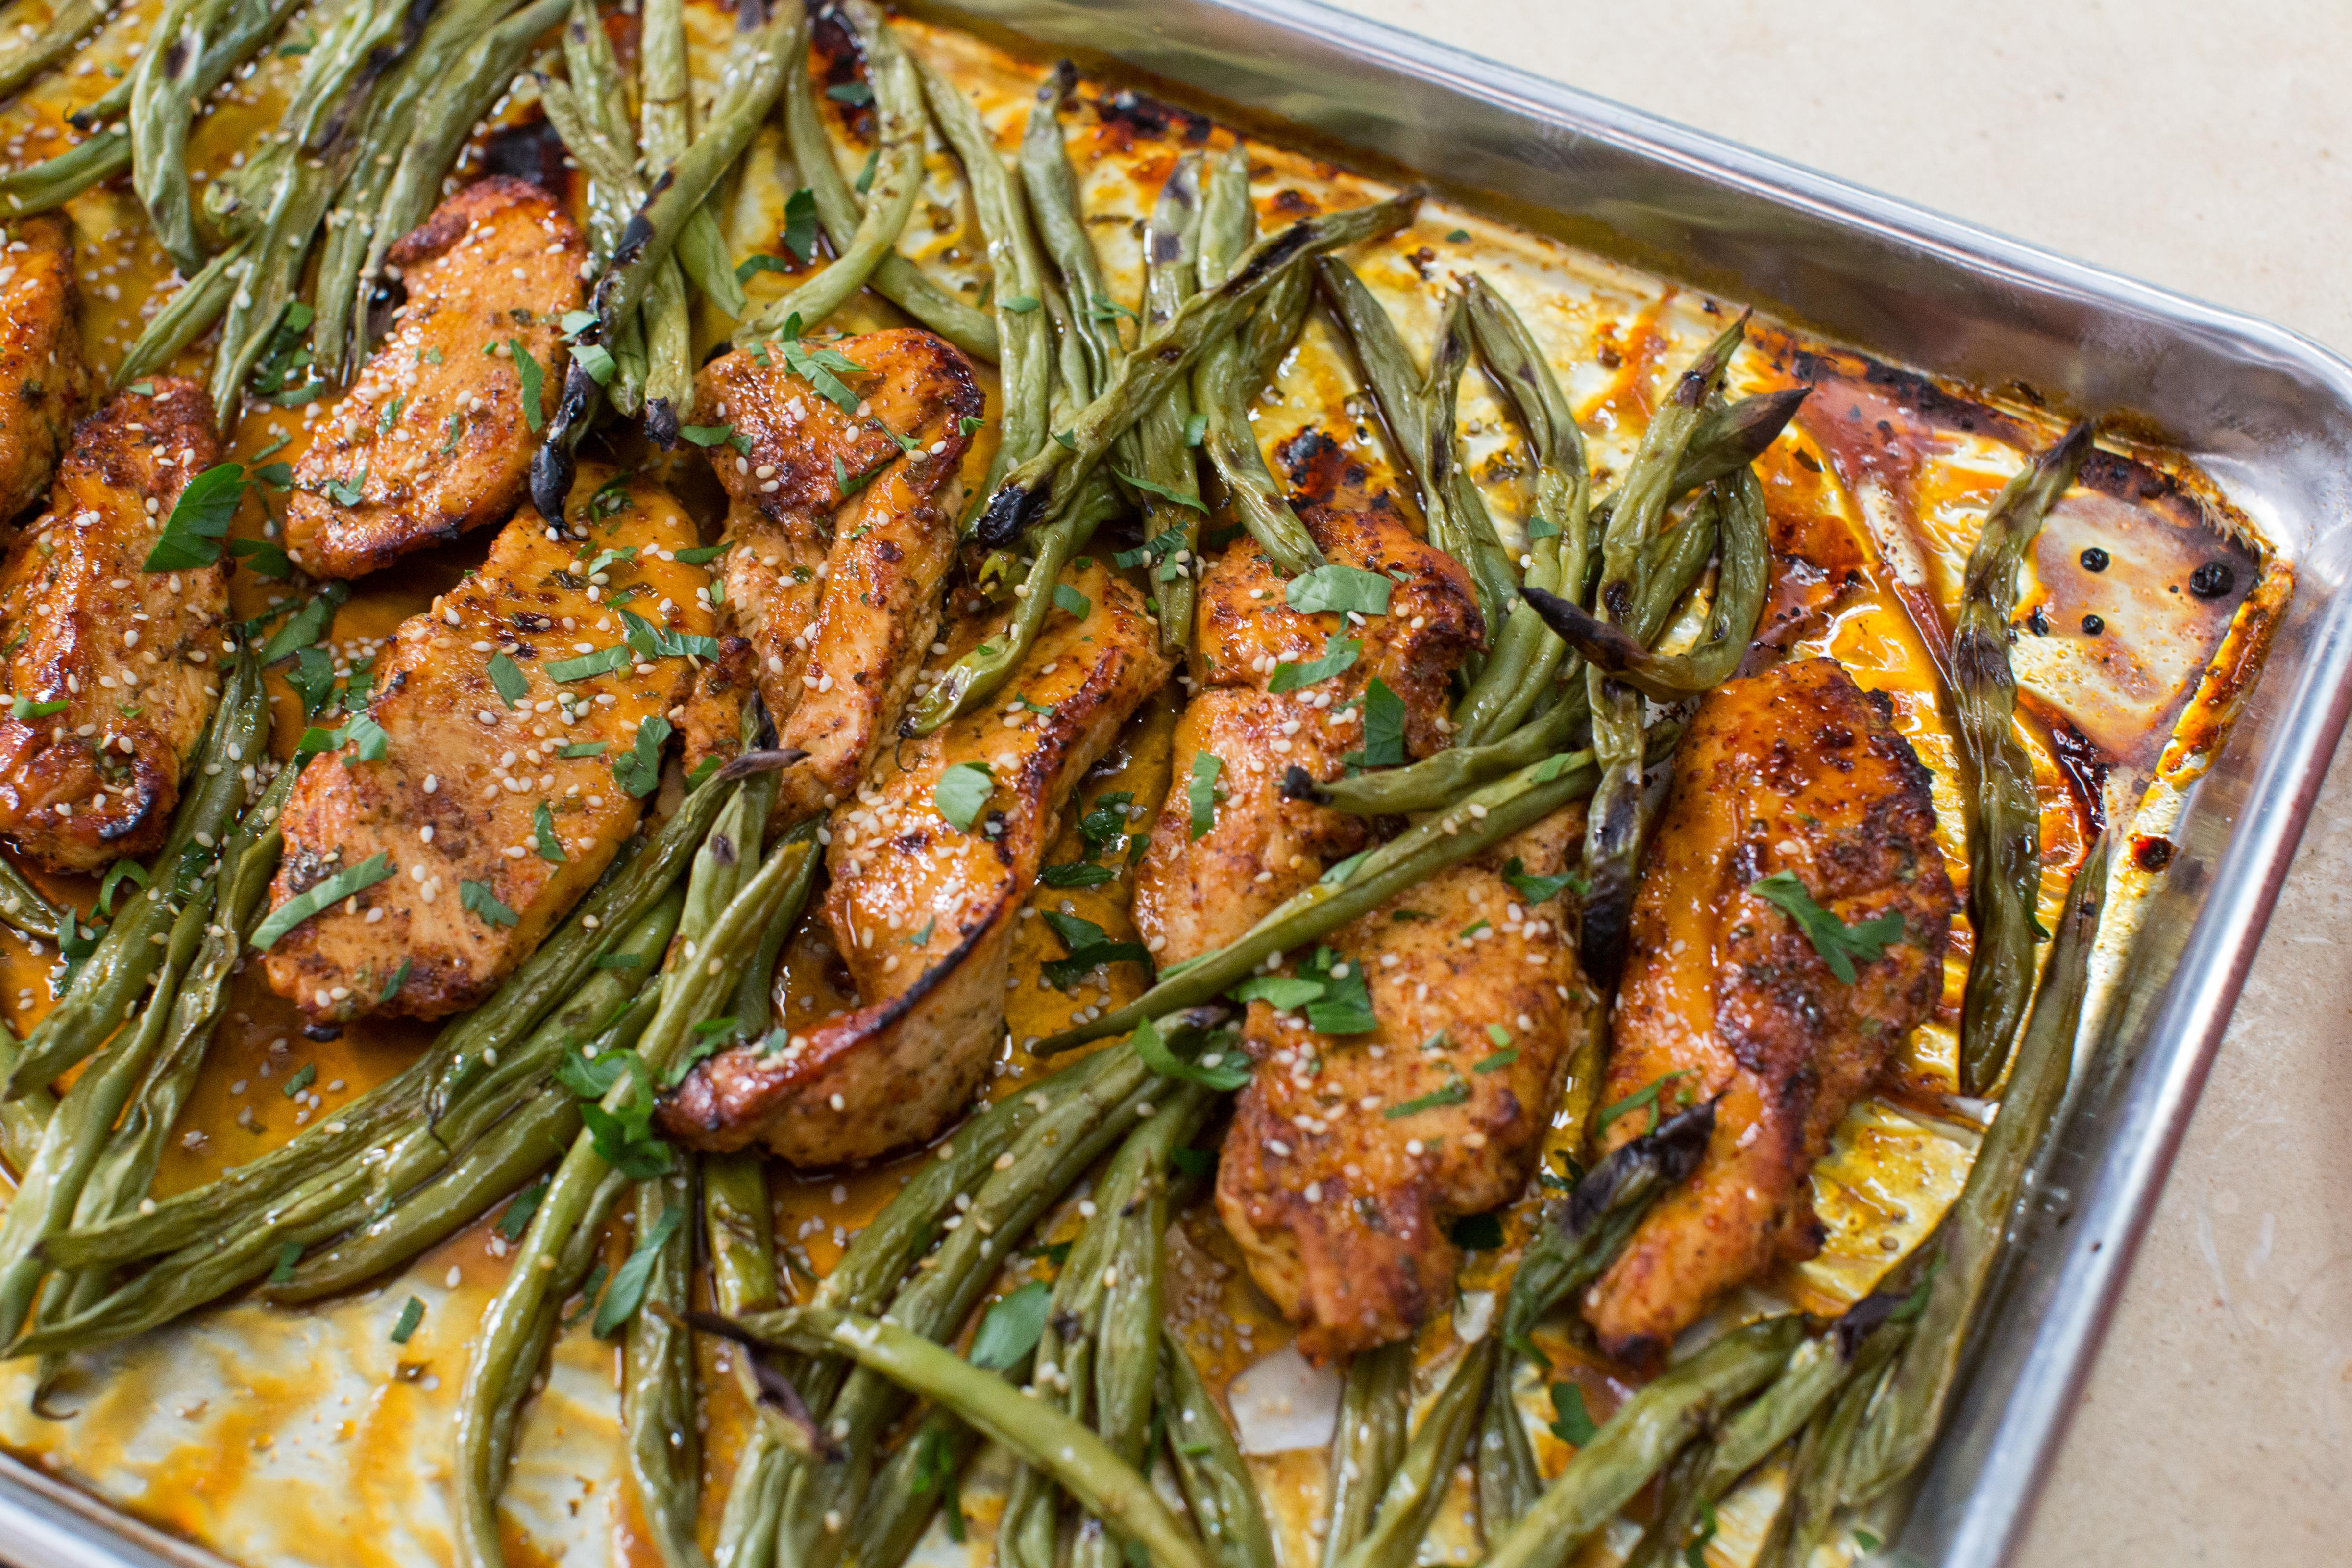 Make this simple honey lemon chicken and green bean sheet pan dinner tonight